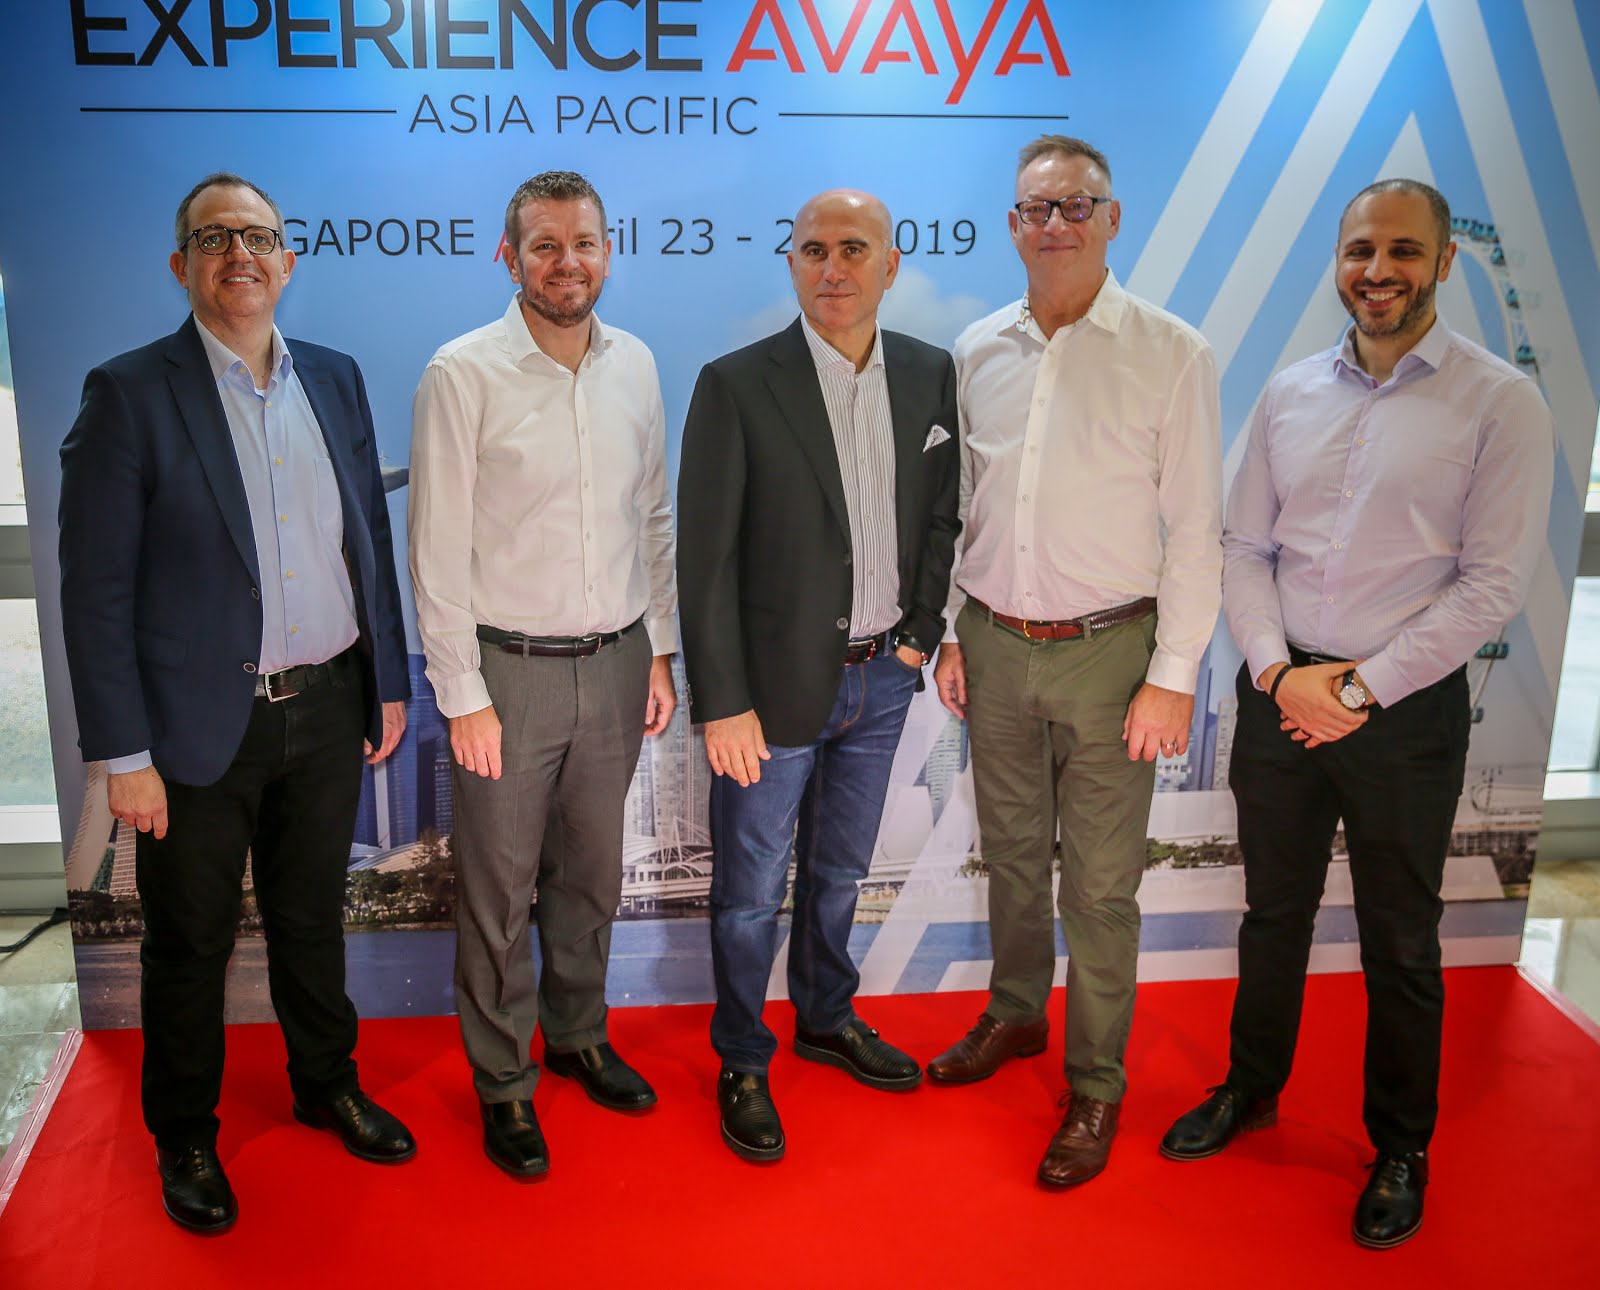 Avaya partners with Standard Chartered to deliver Multi-Year CX